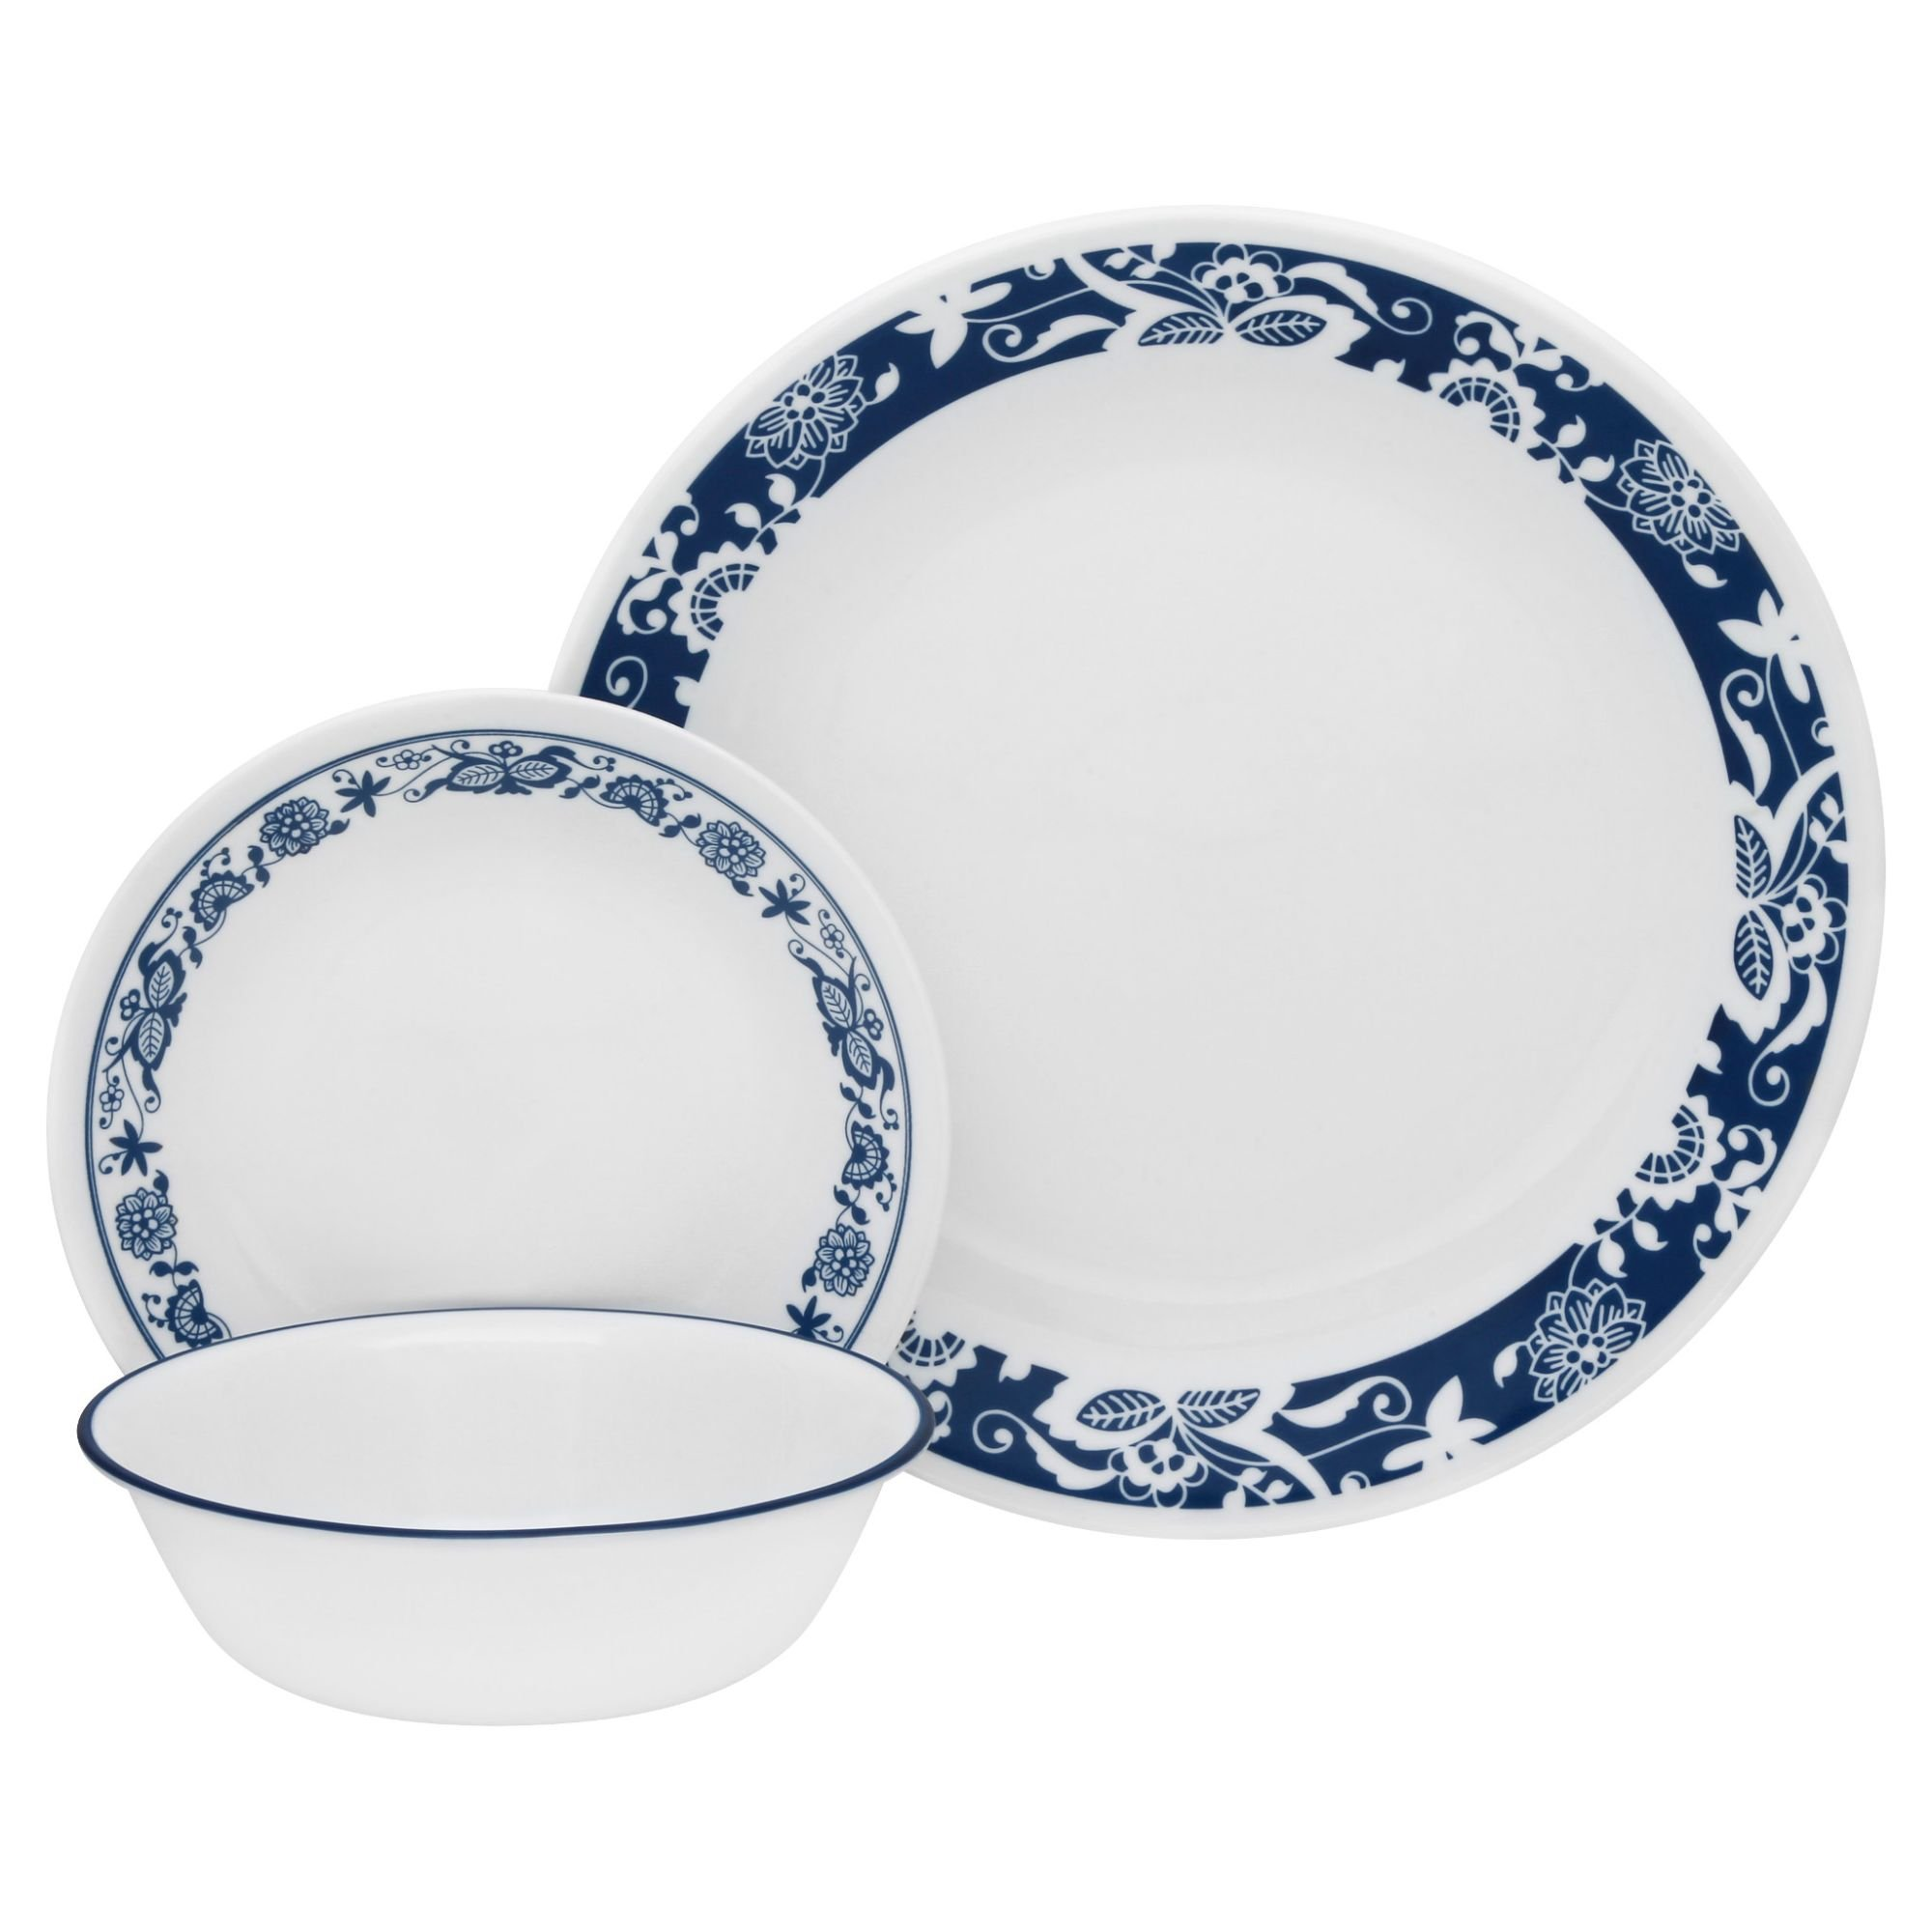 Corelle Livingware 16 piece Dinnerware Set, Service for 4, True Blue by Corelle